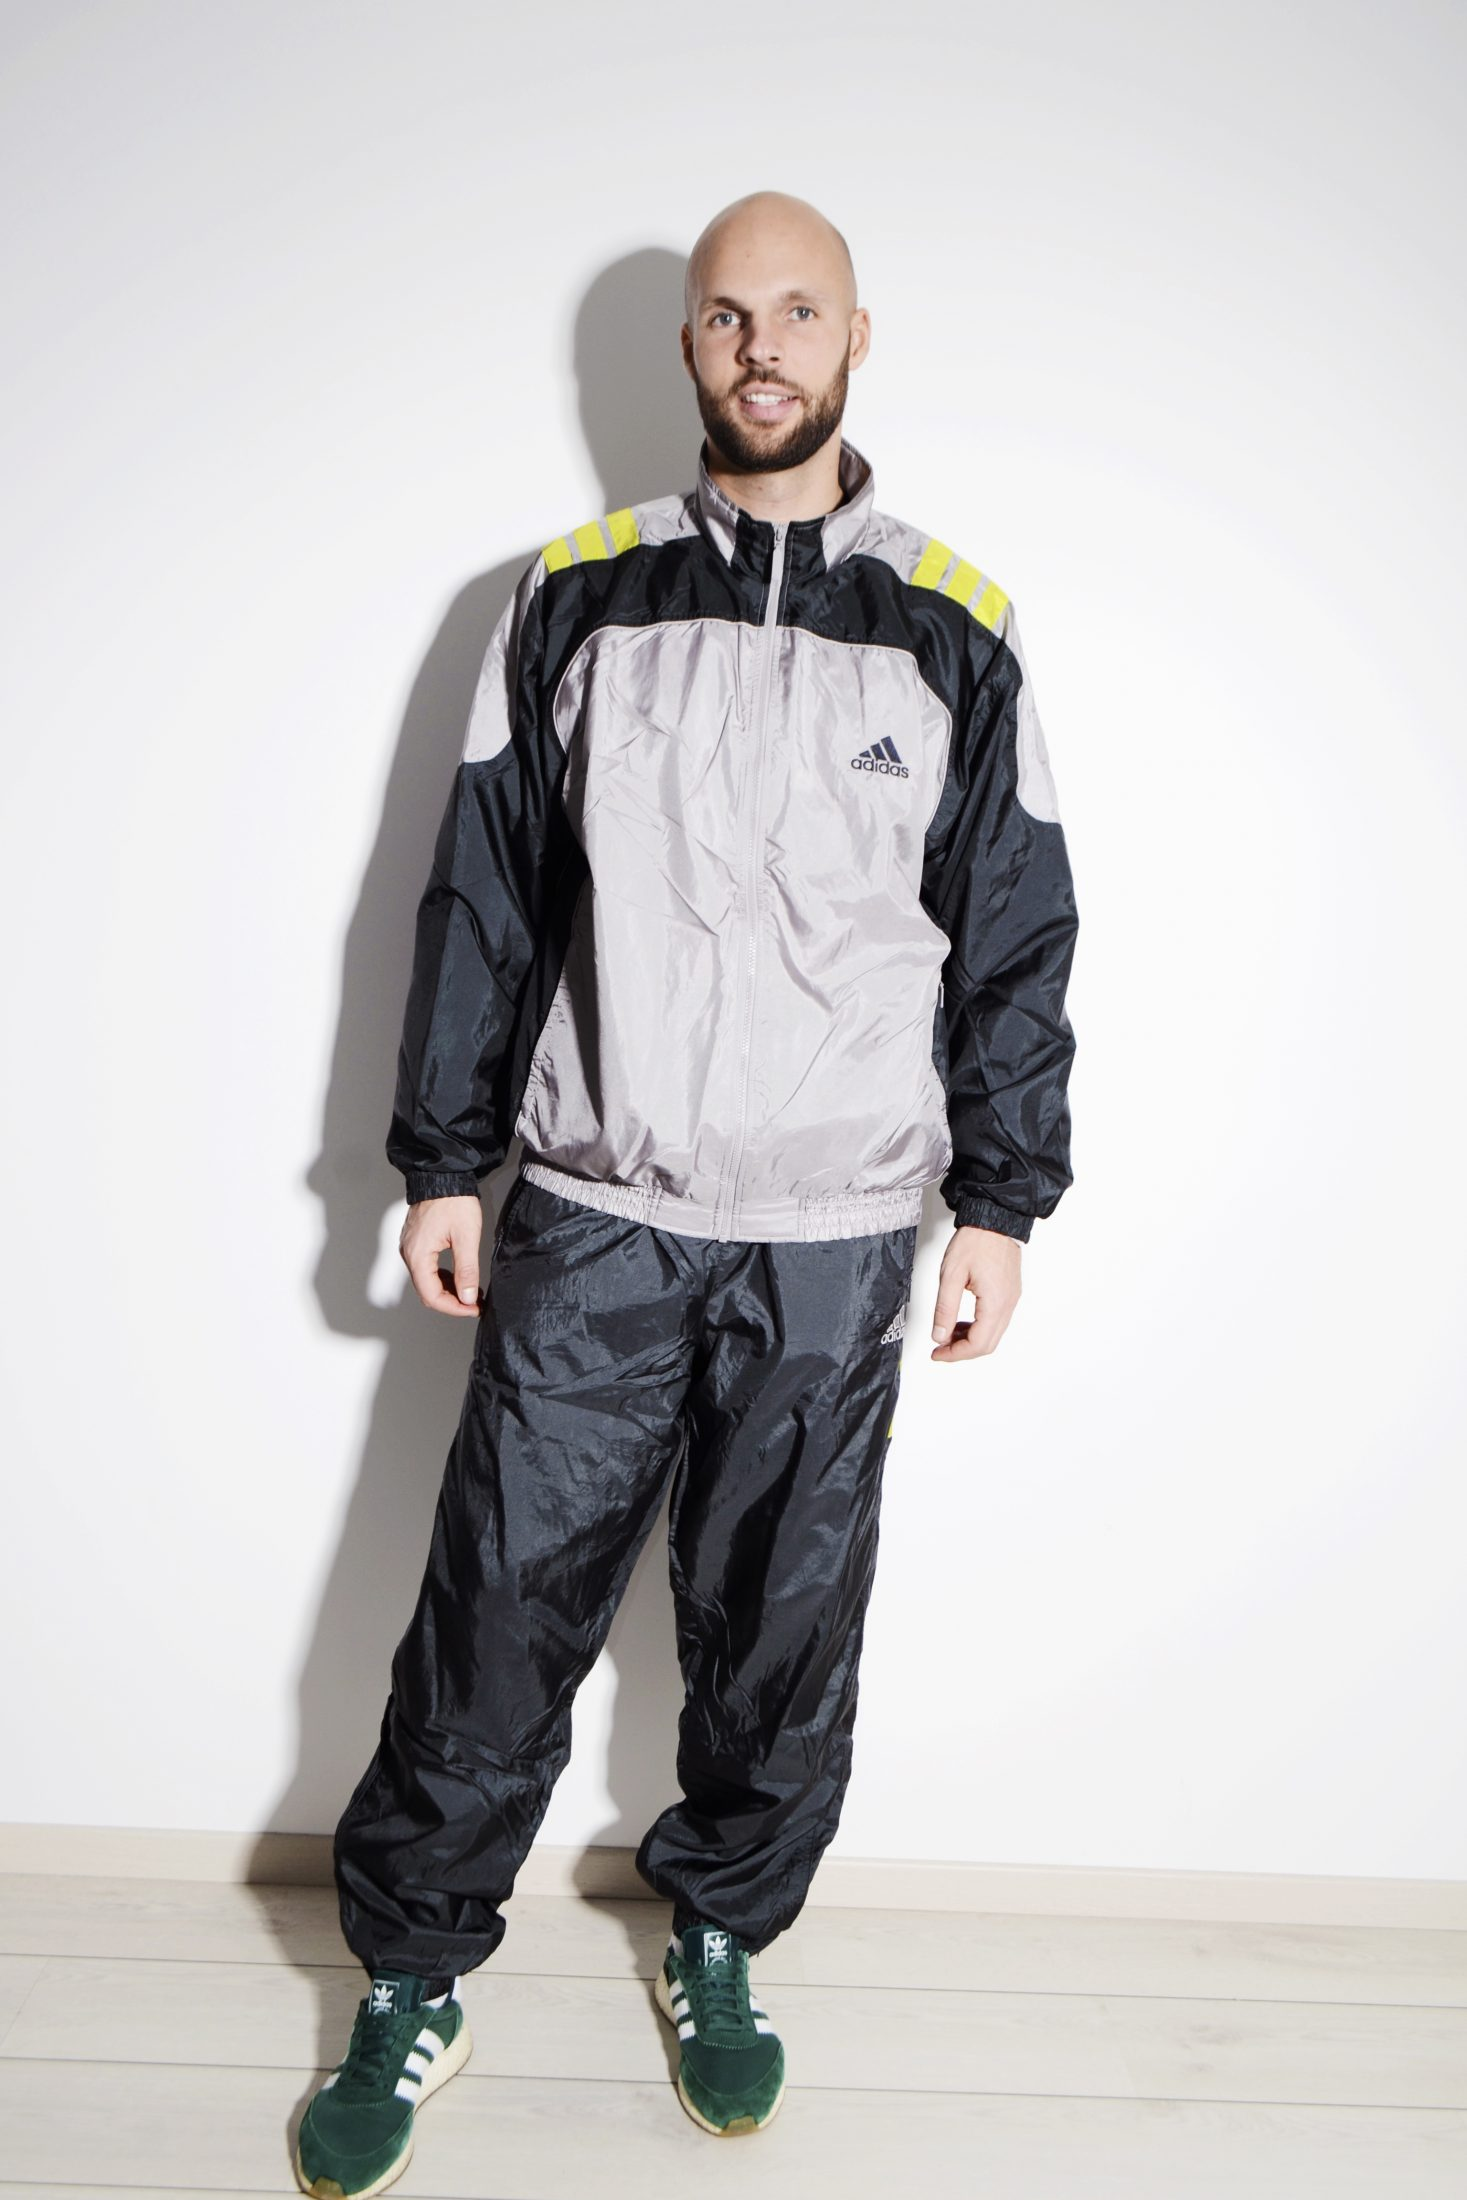 833069f8e84e9 ADIDAS vintage sport tracksuit in grey colour for men